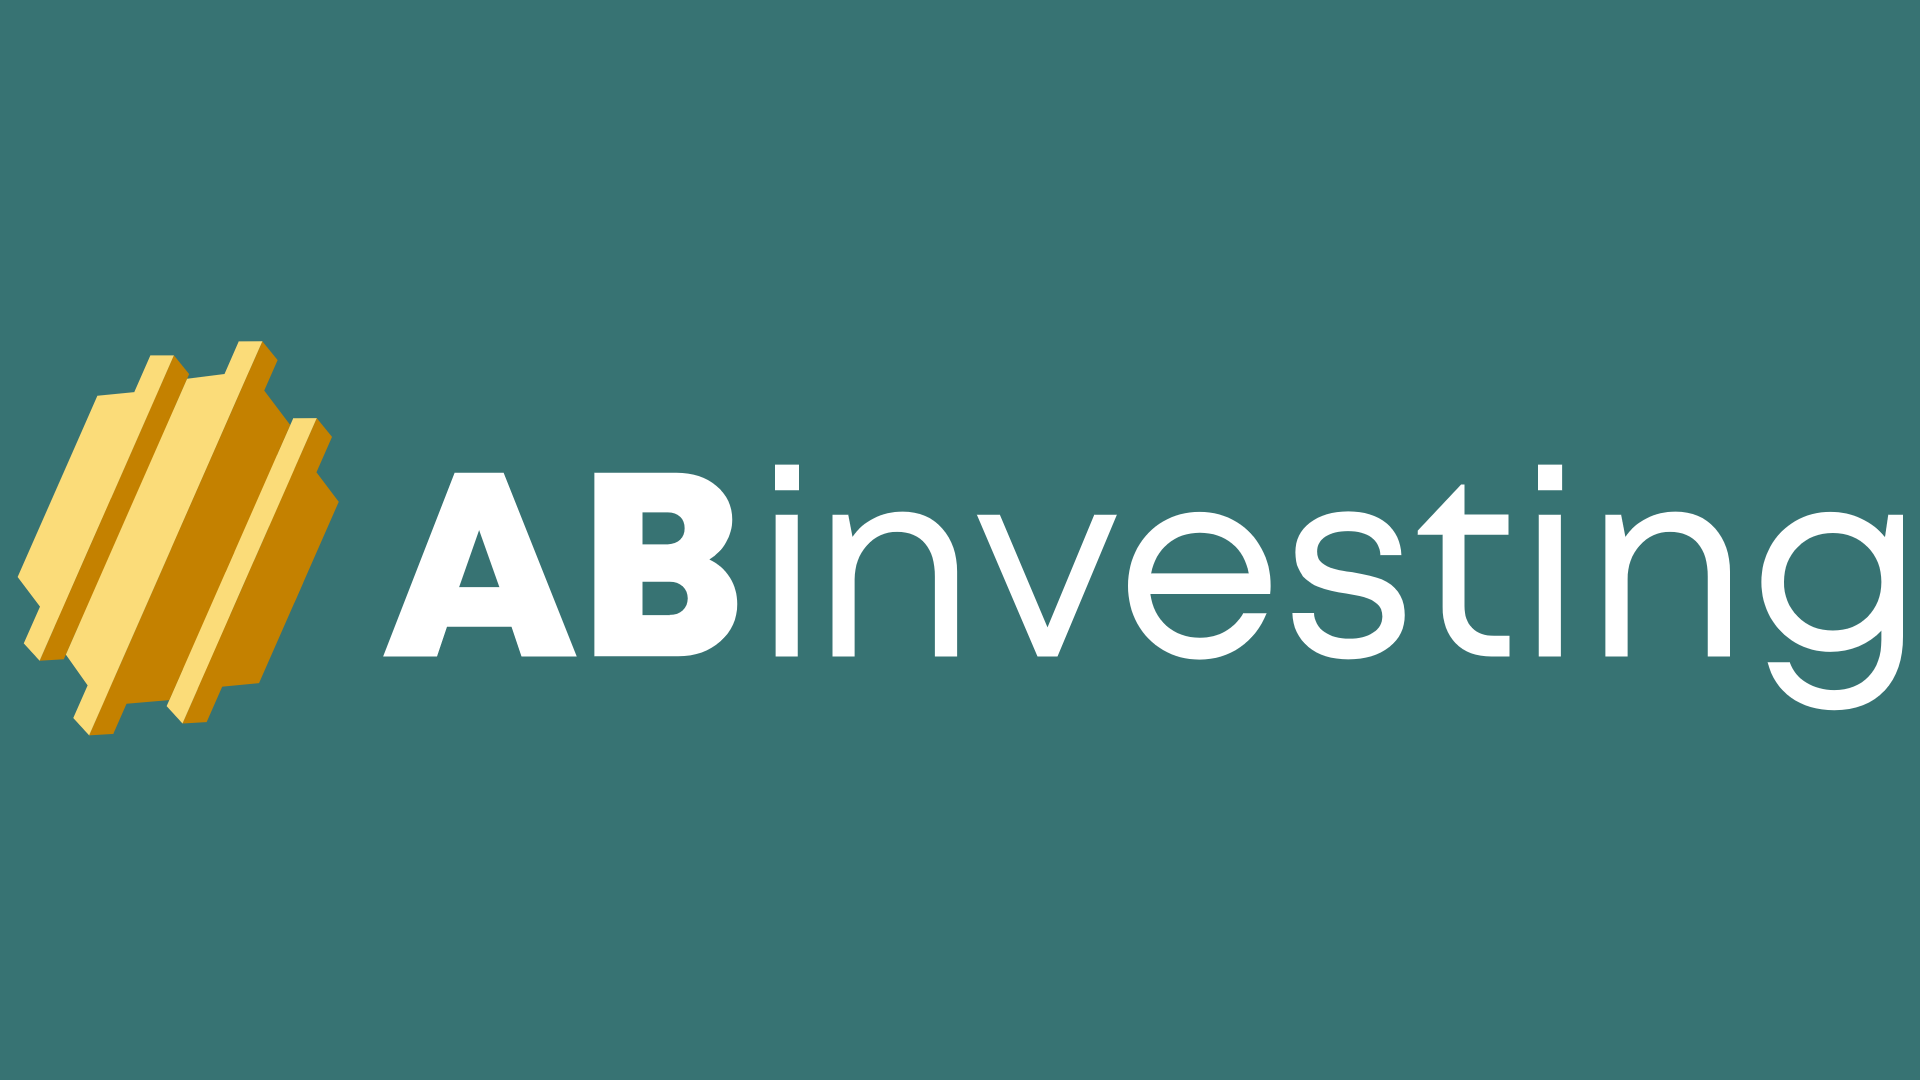 ABInvesting review – What does this broker has to offer?